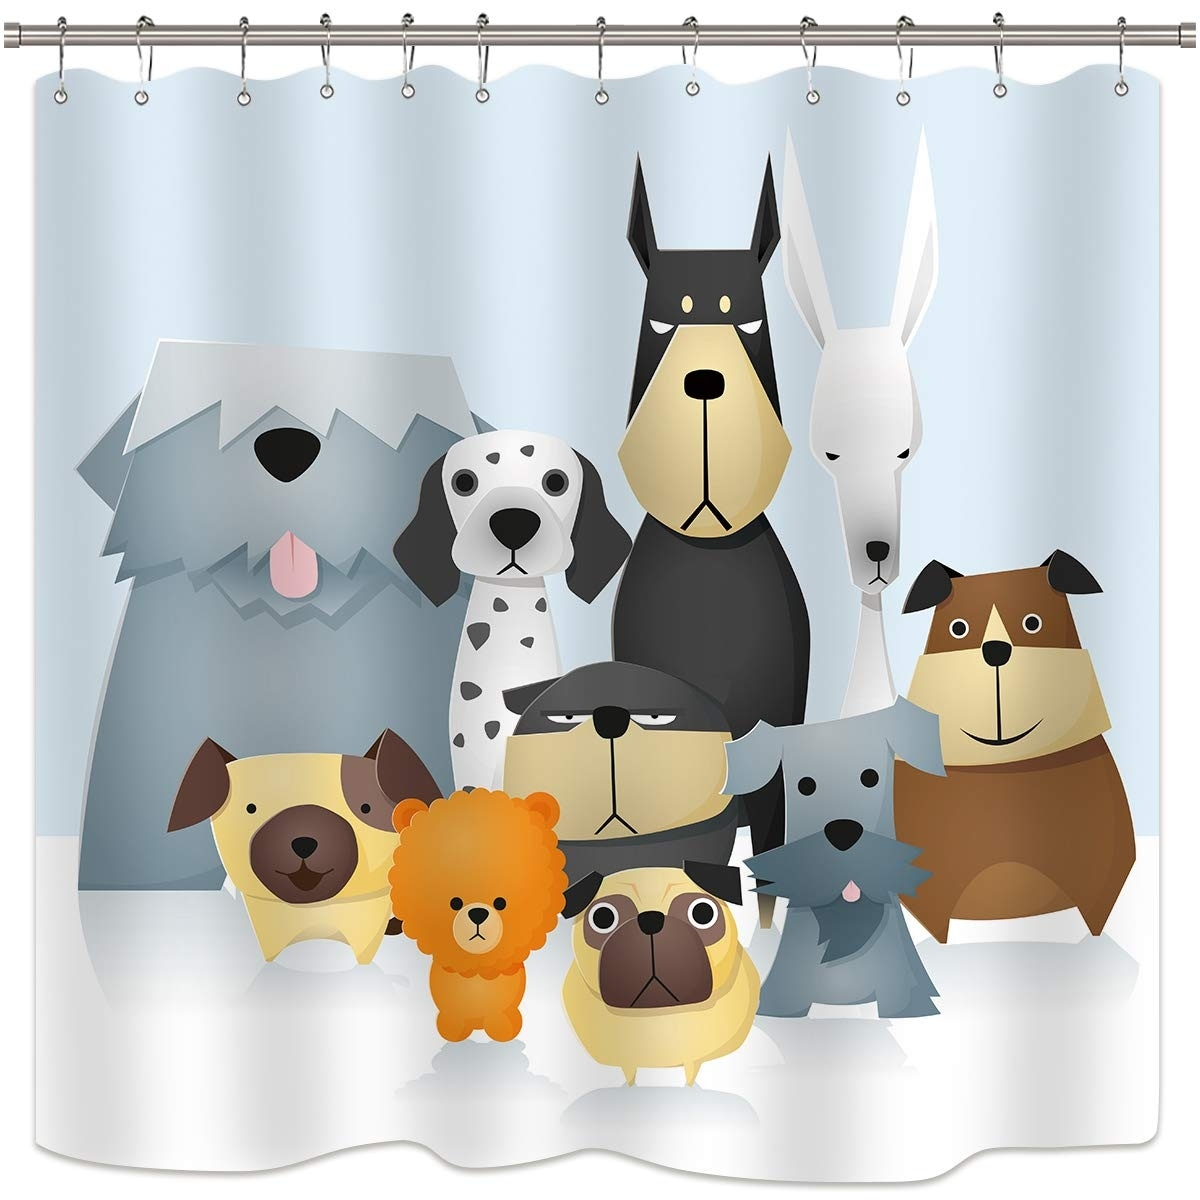 Cartoon Shower Curtain Colorful Puzzle Pieces Print for Bathroom